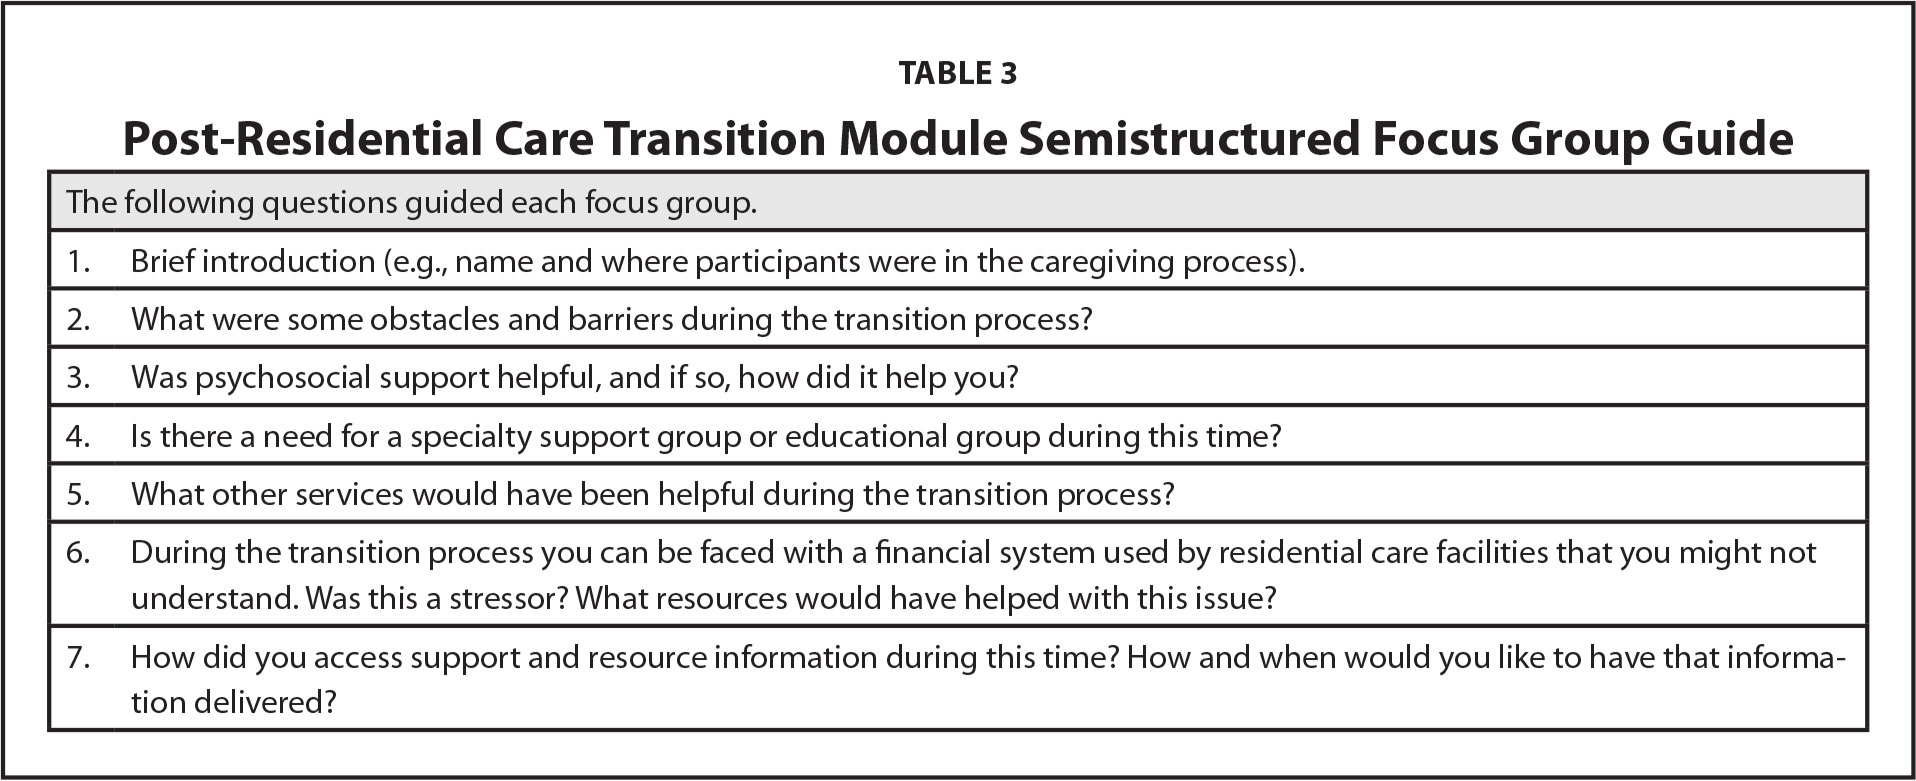 Post-Residential Care Transition Module Semistructured Focus Group Guide